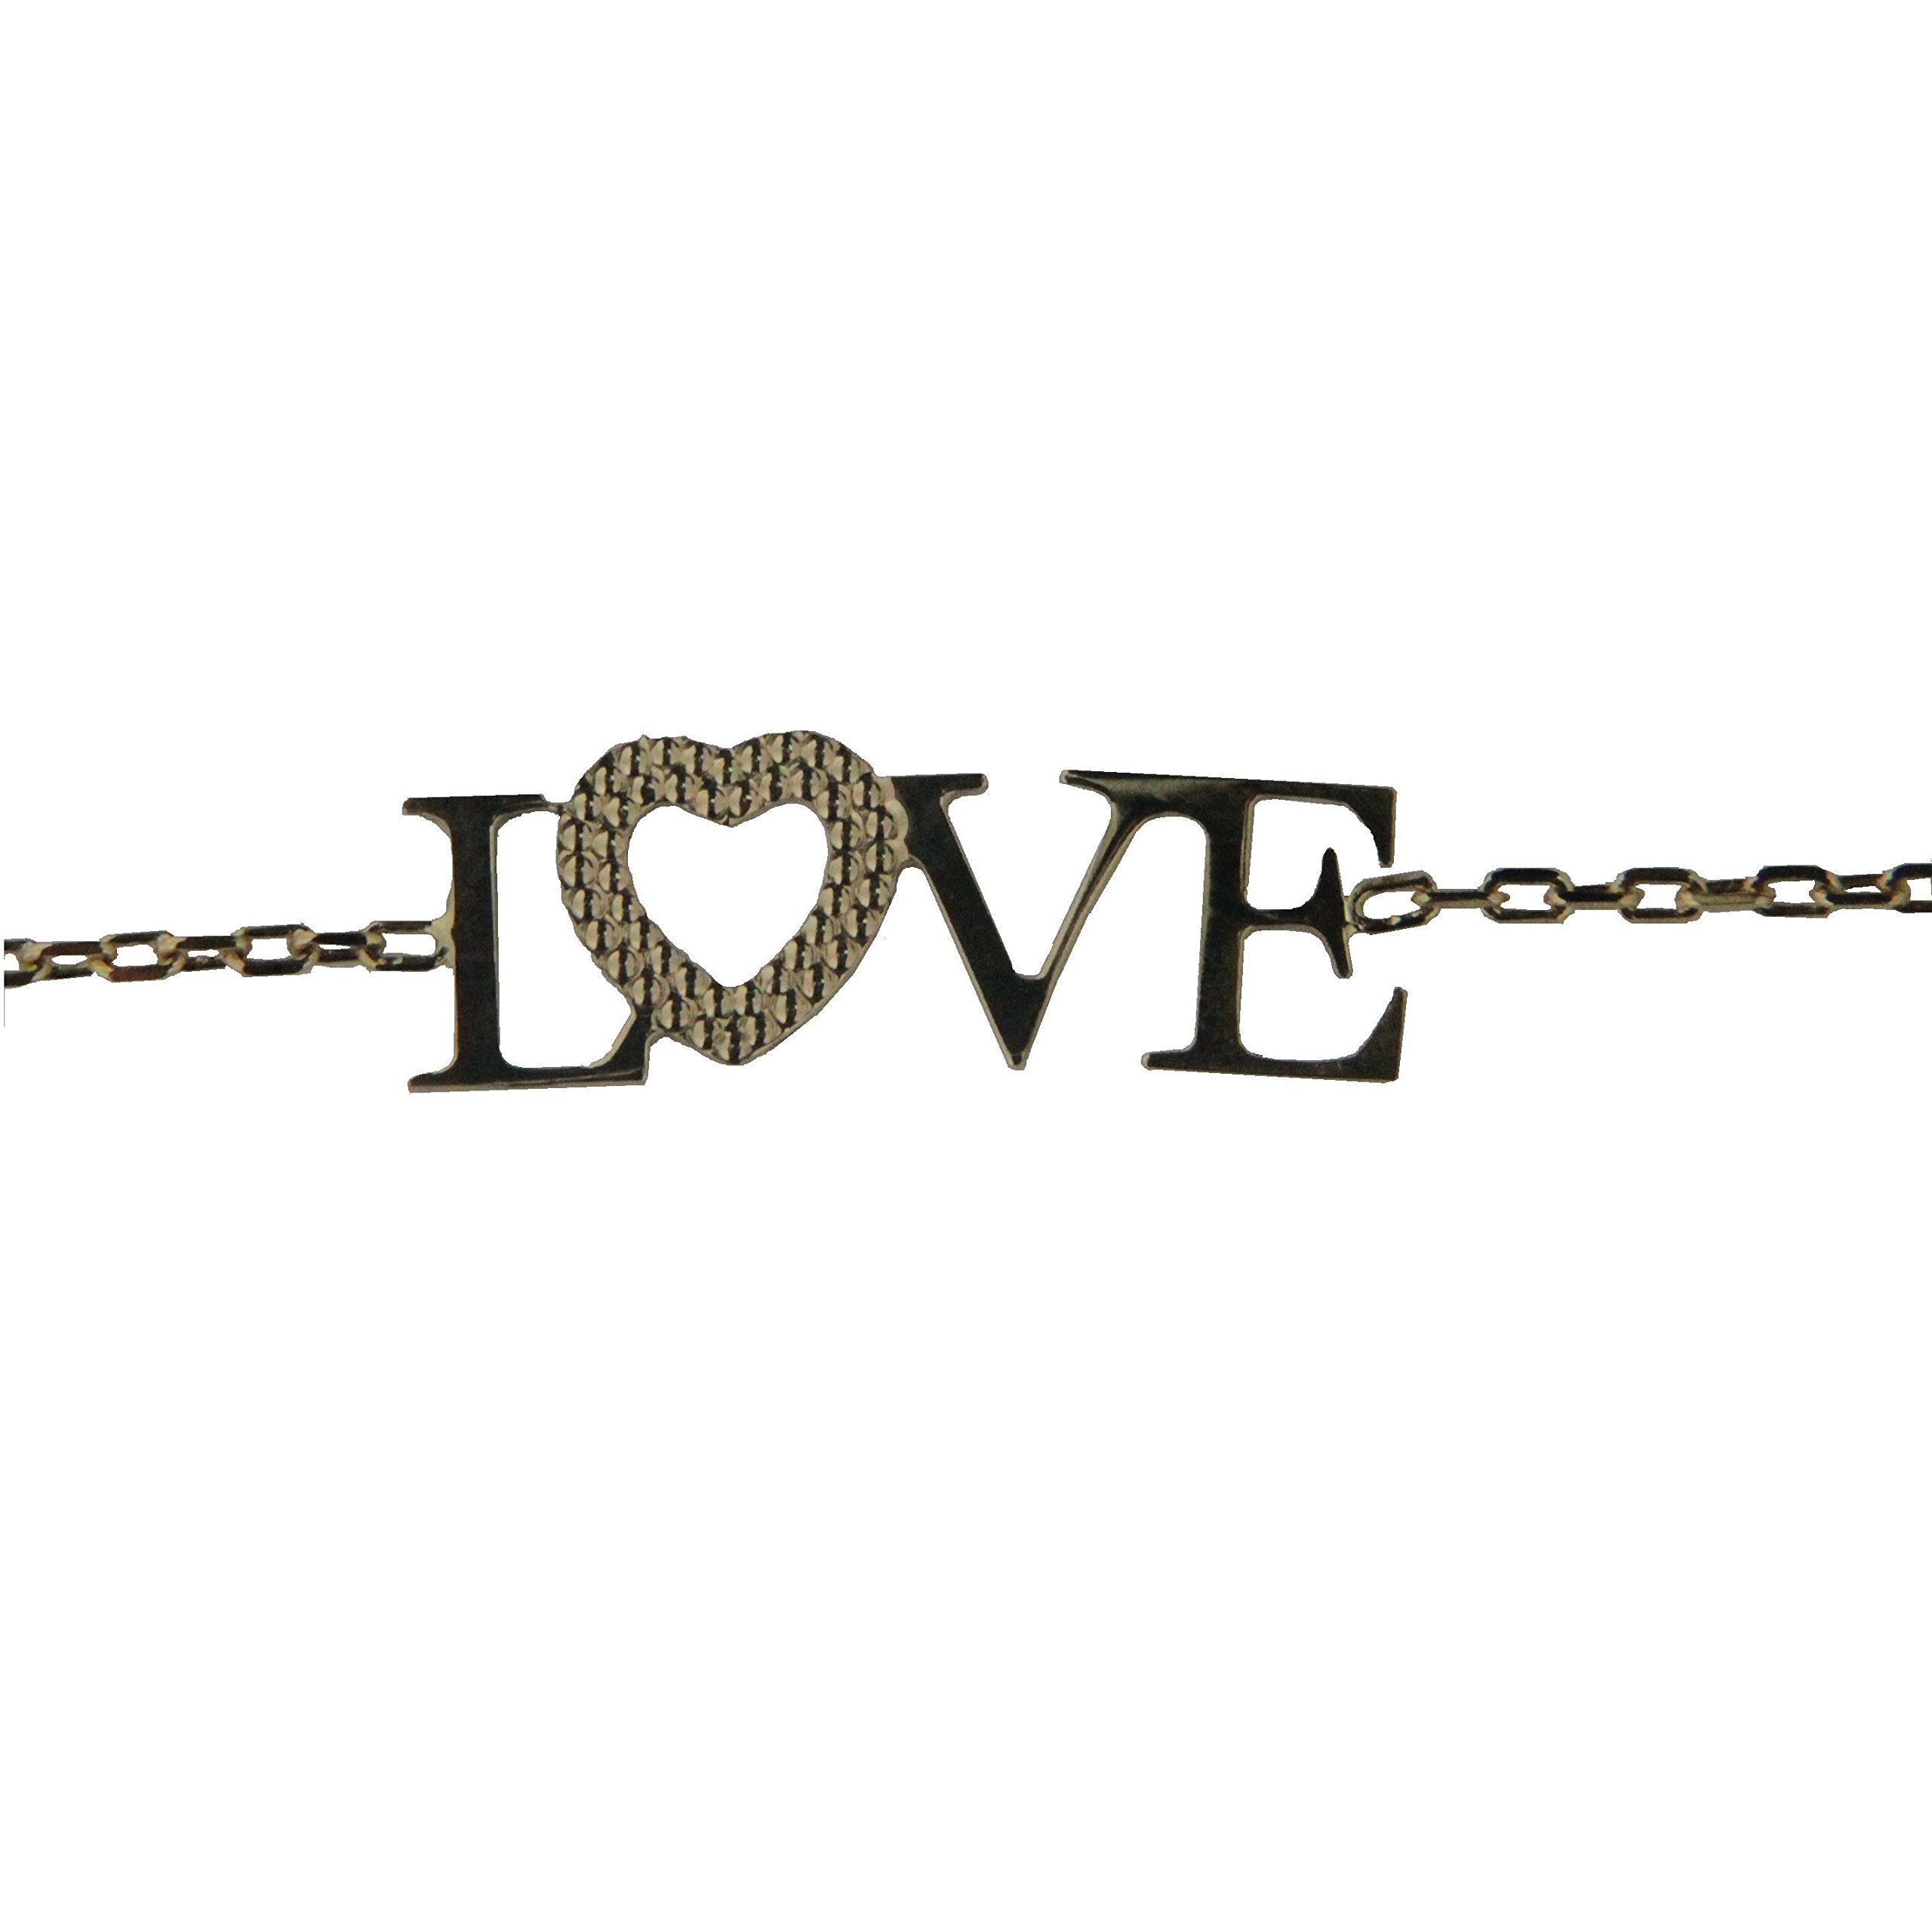 18K Yellow Gold Love Bracelet 7 inches with extra rings starting at 6.30 inch